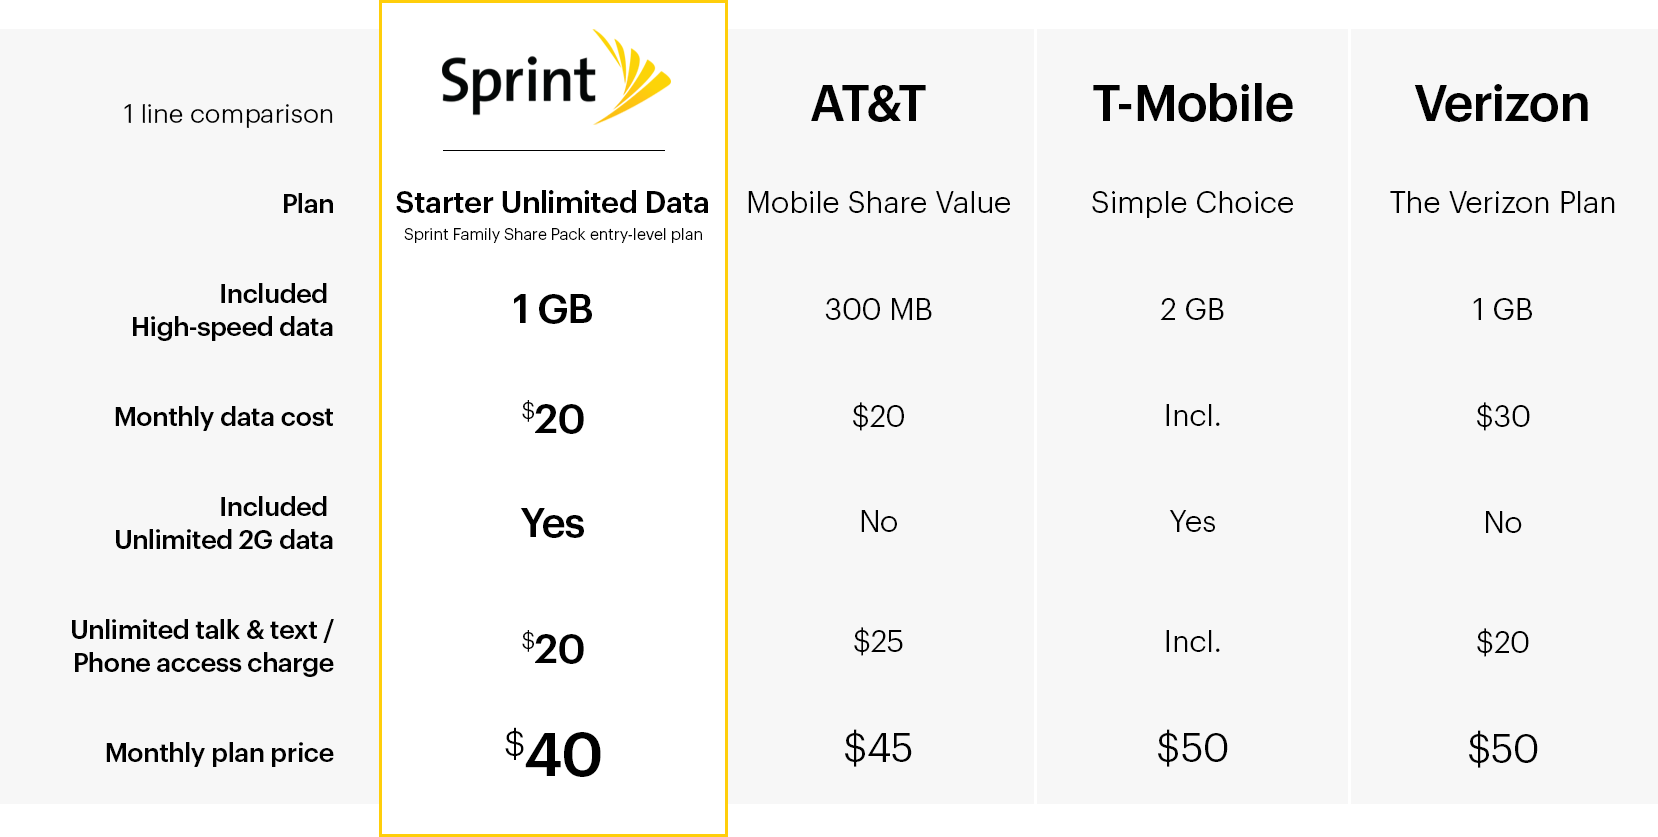 Sprint is the best price for data